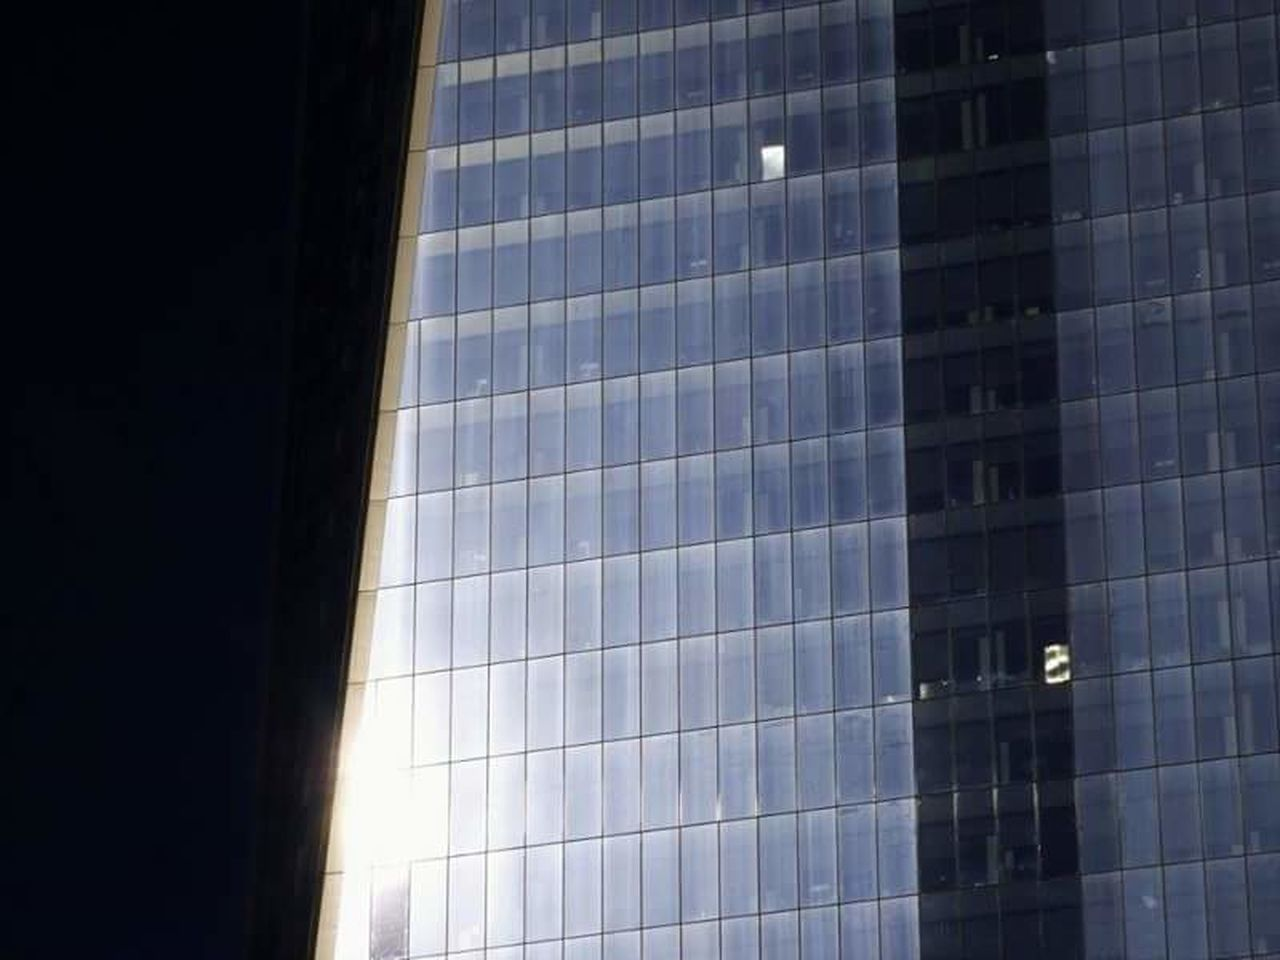 architecture, modern, built structure, low angle view, no people, window, building exterior, skyscraper, day, illuminated, sky, outdoors, city